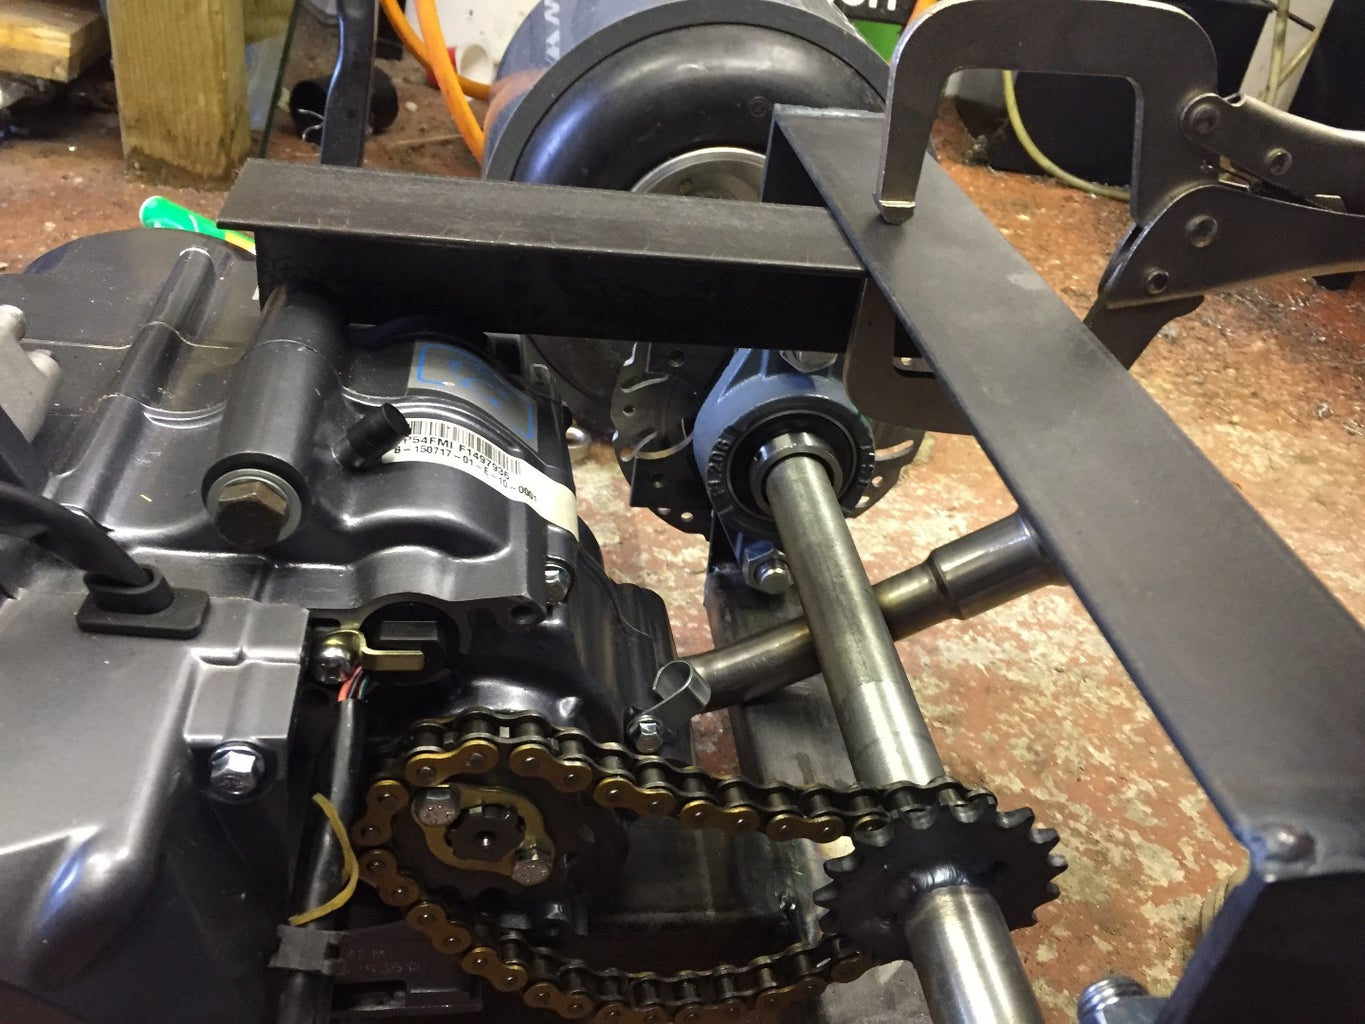 Mount the Seat and Exhaust Mount